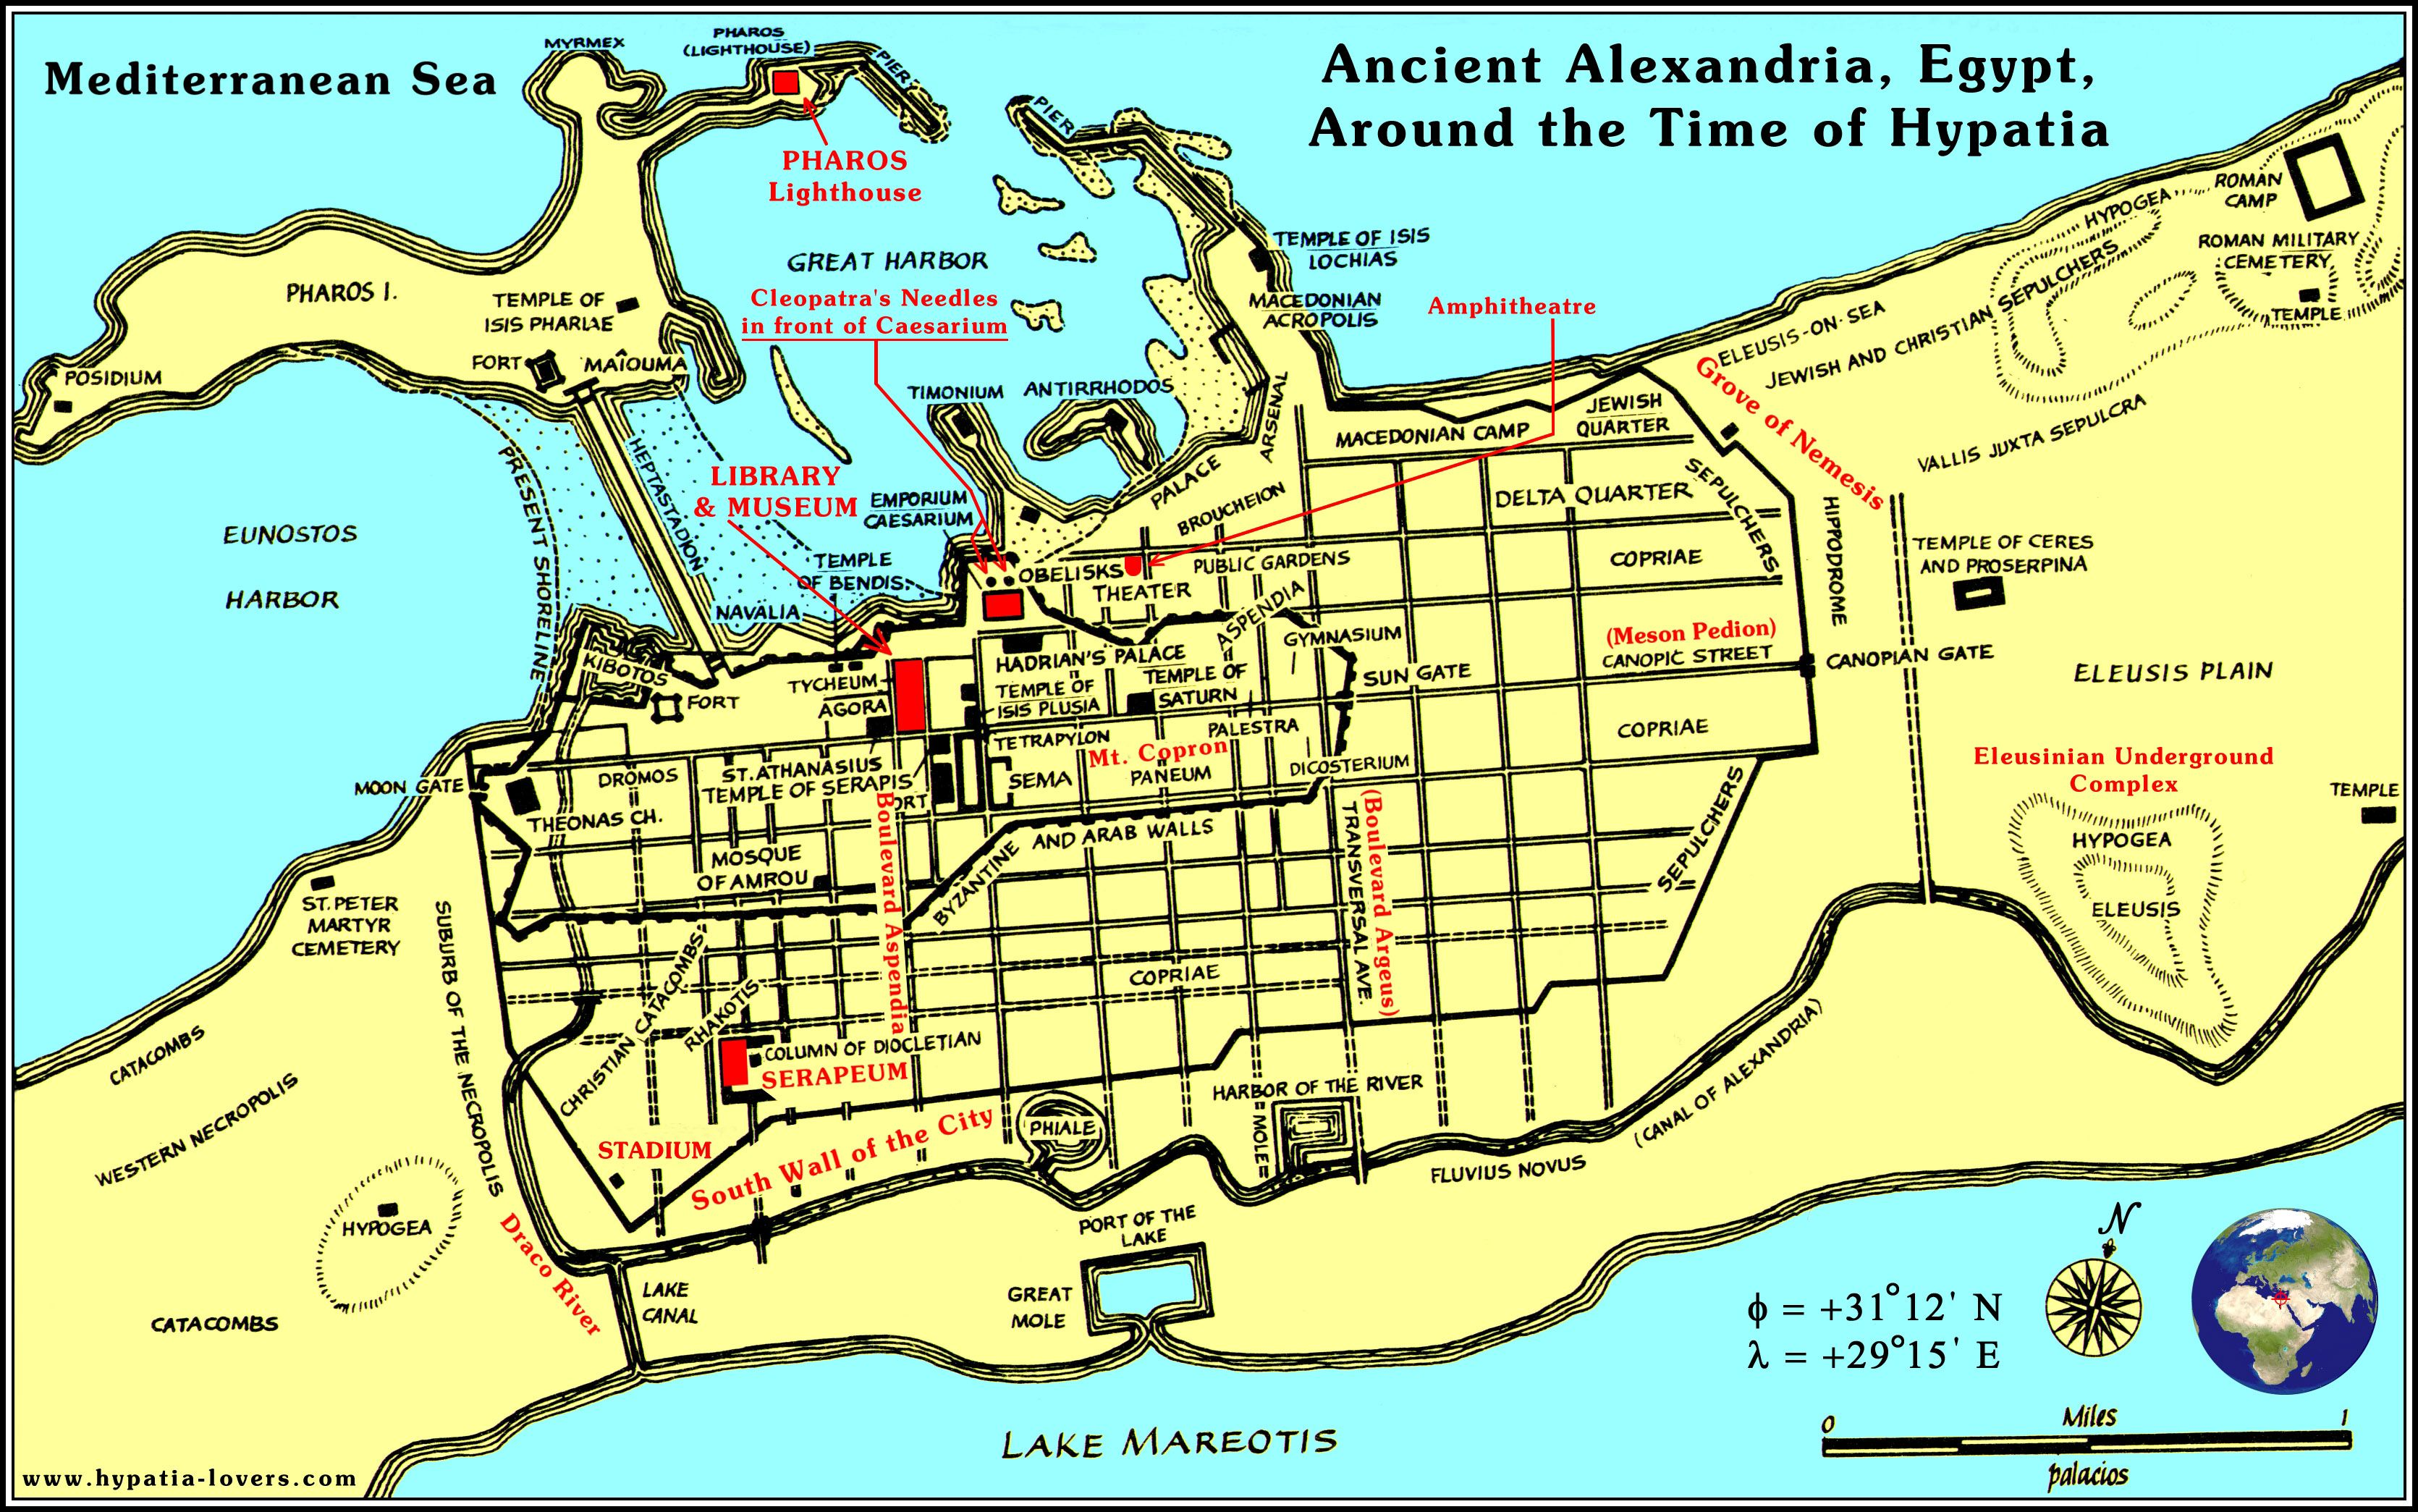 the royal library of alexandria or ancient library of alexandria in alexandria egypt was one of the largest and most significant libraries of the